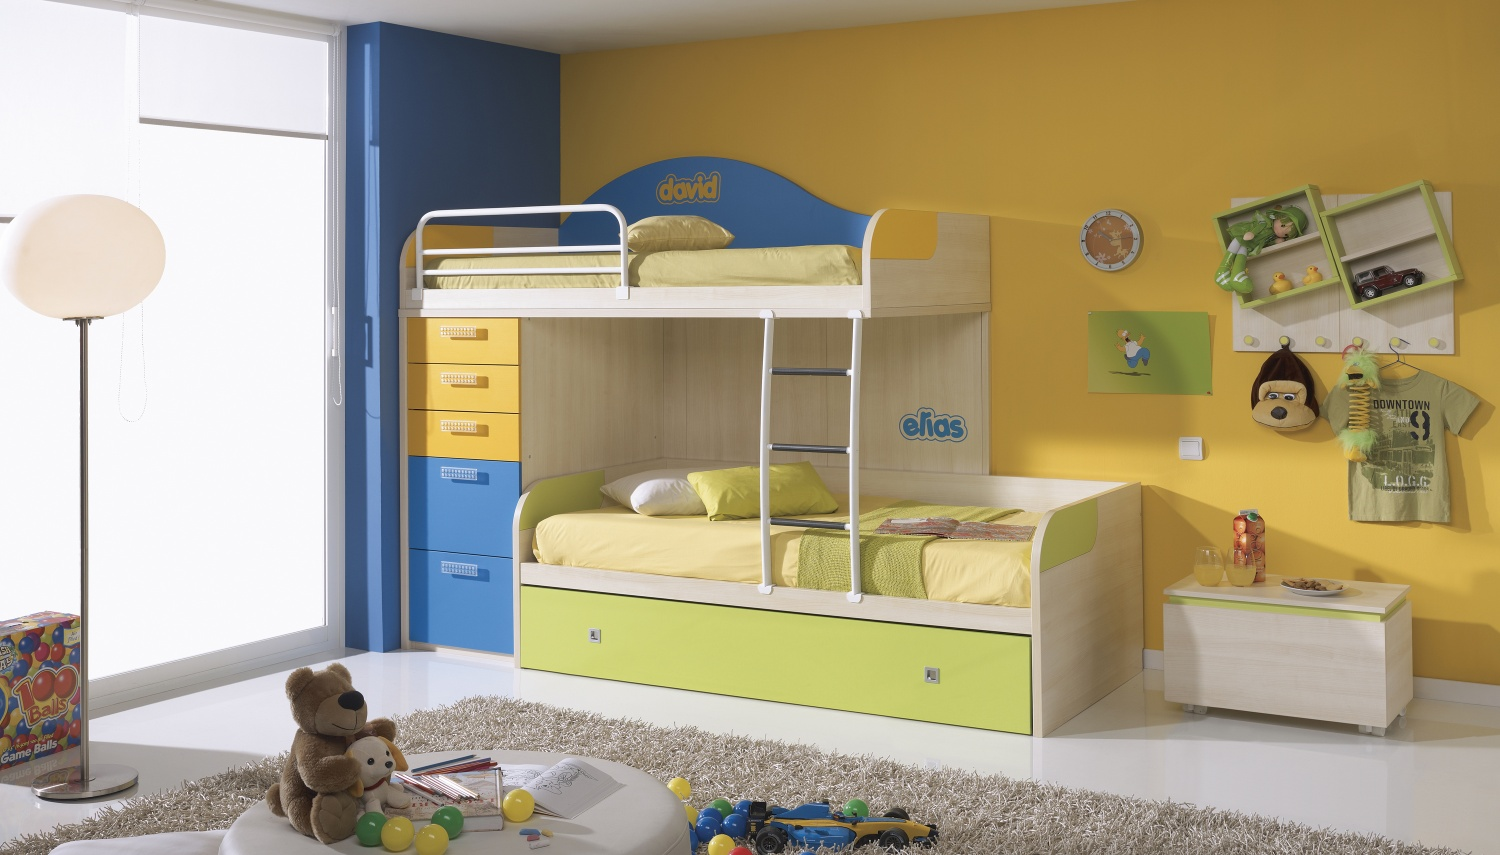 Loft Bed Idea For Toddler With Built In Ladder Tall Drawer System And Under Storage Small